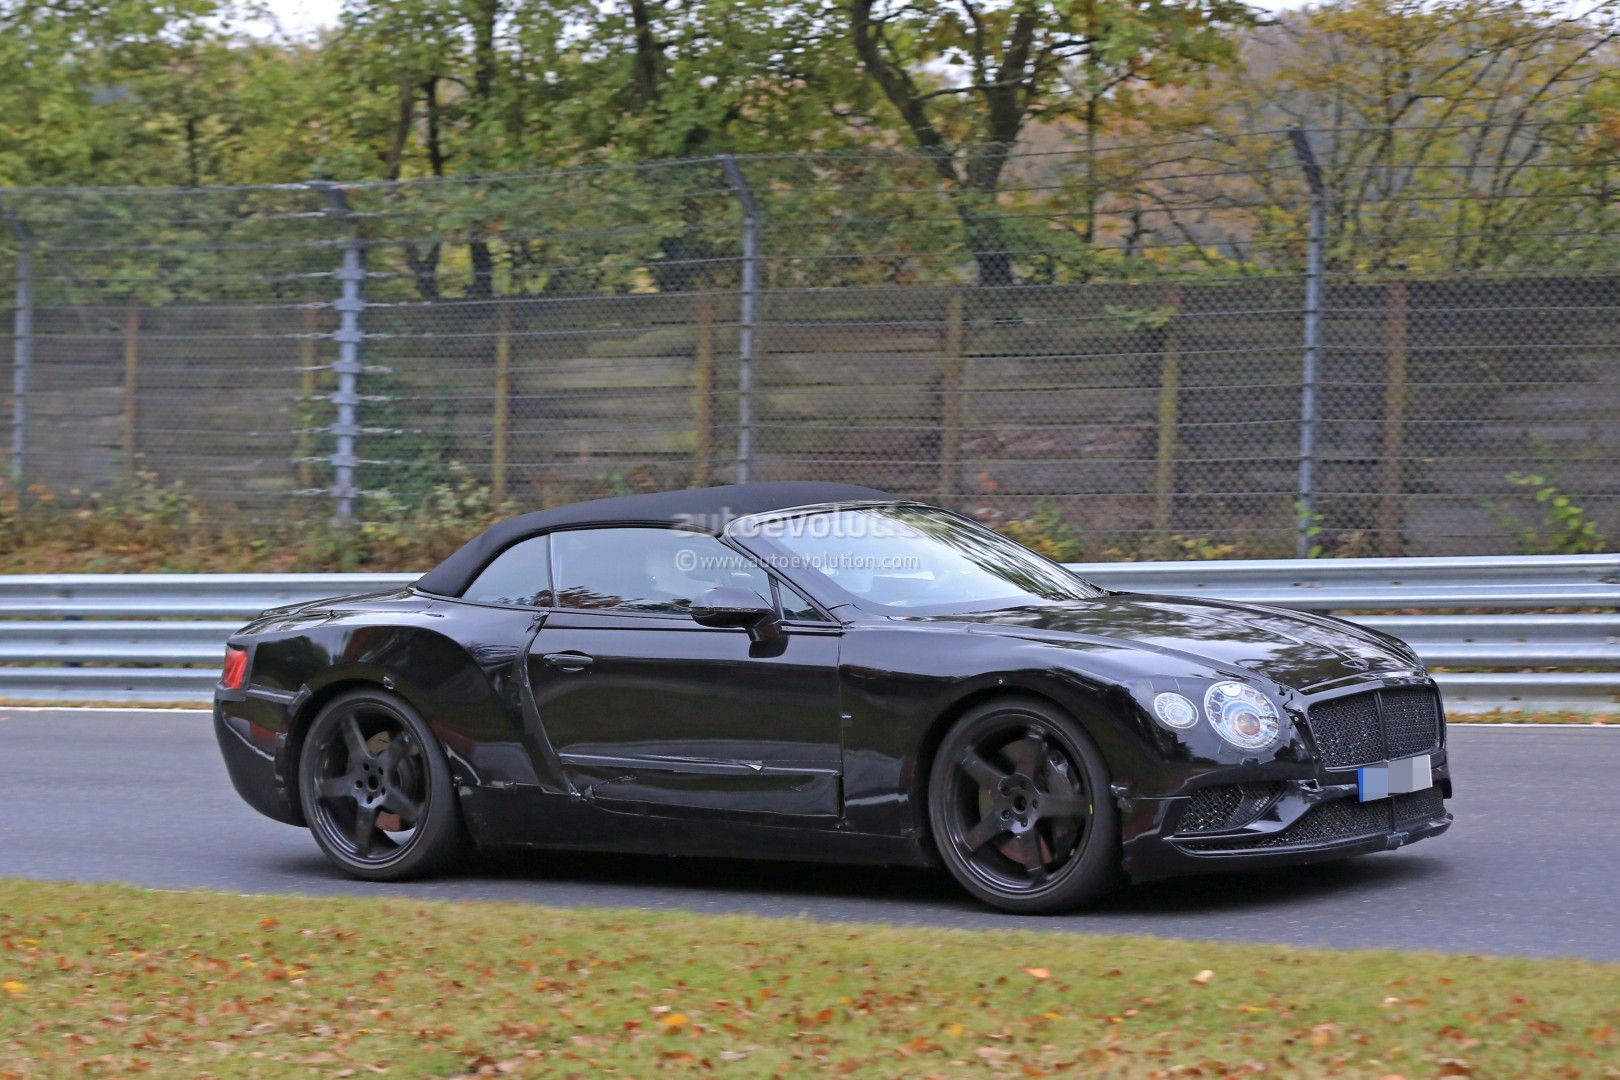 2017 - [Bentley] Continental GT - Page 2 2018-bentley-continental-gt-convertible-shows-wide-stance-on-nurburgring_12